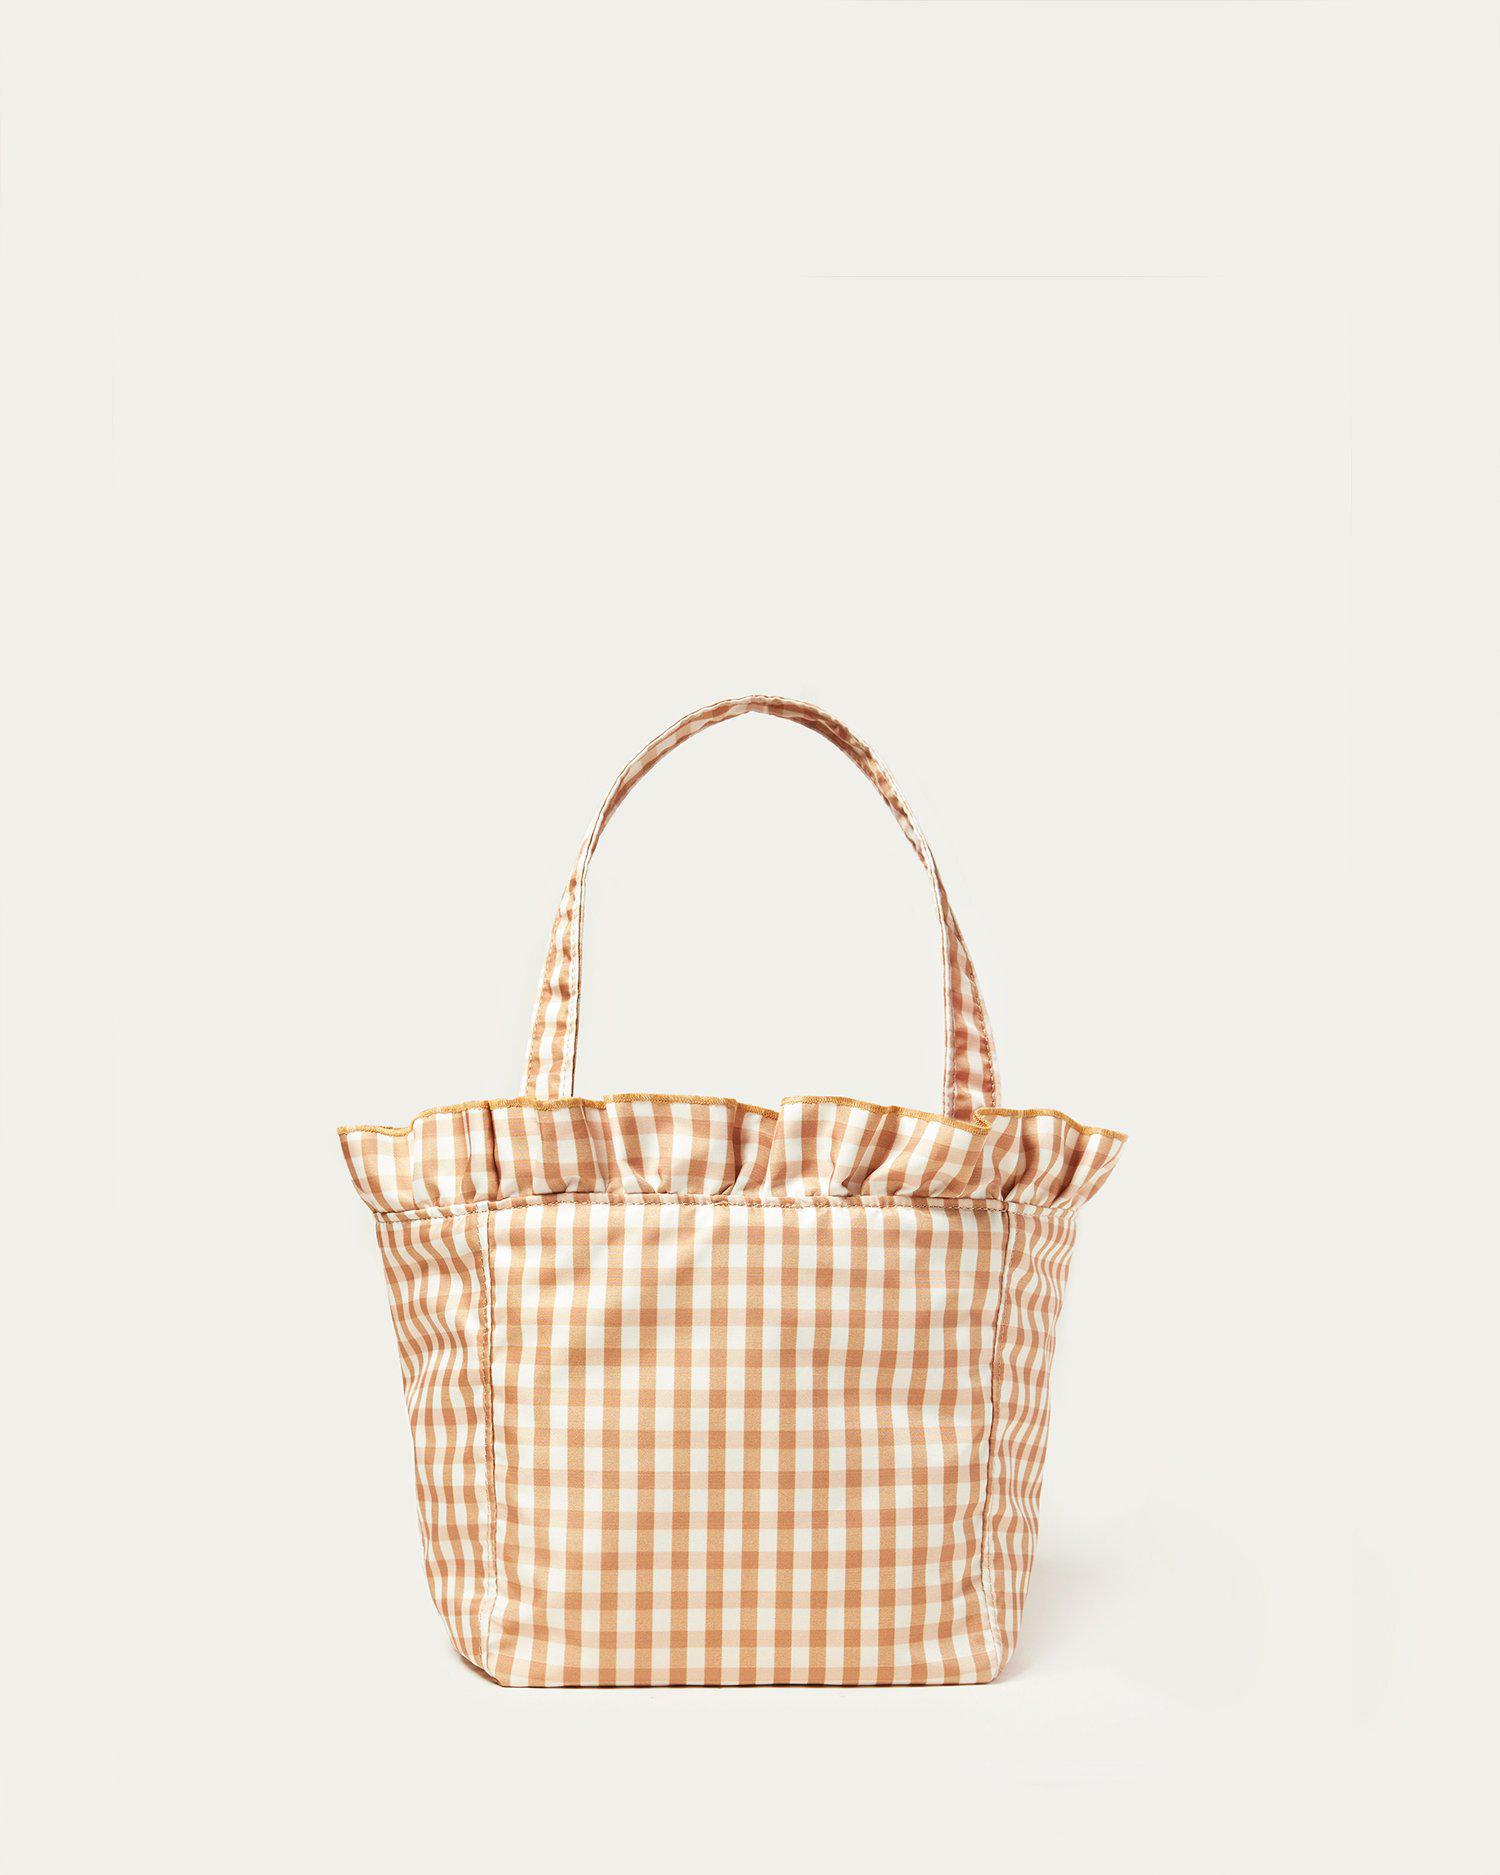 Claire Amber Gingham Ruffle Tote